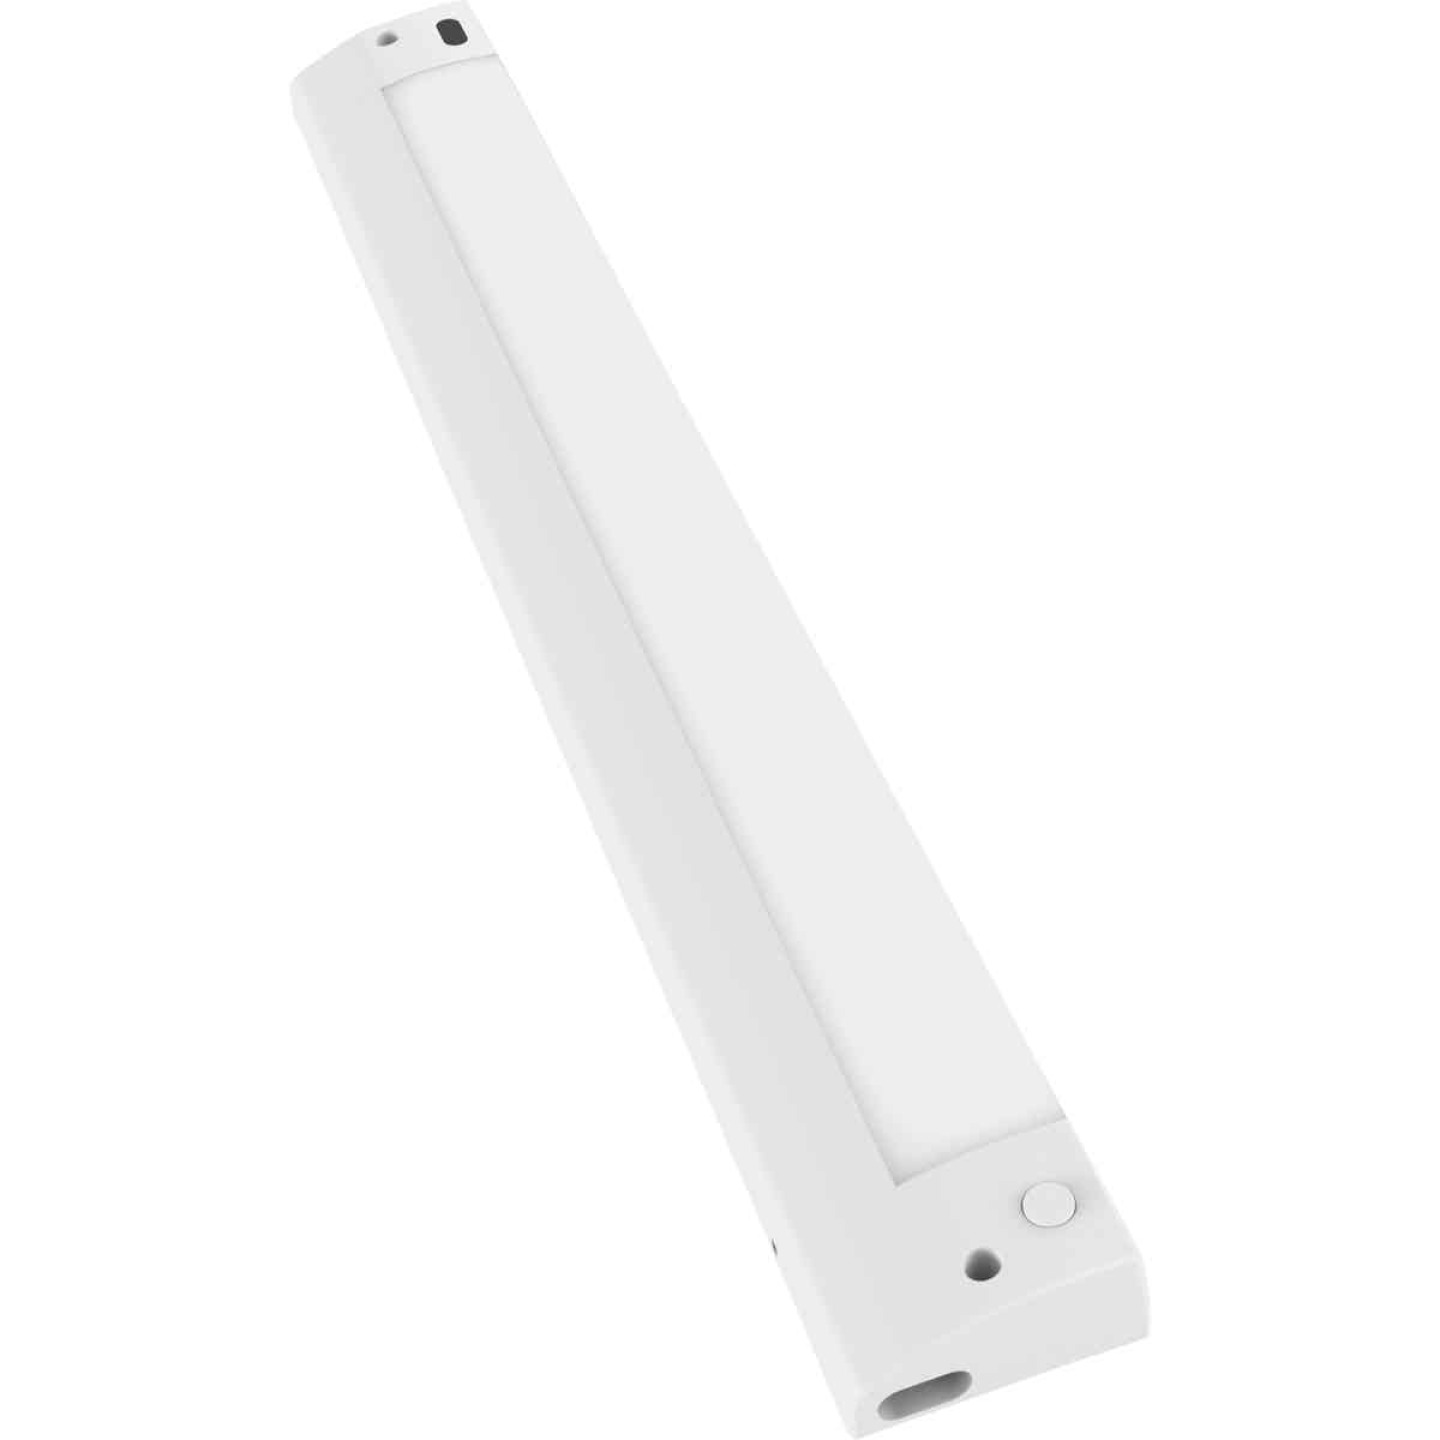 Good Earth Lighting 12 In. Plug-In White LED Color Temperature Changing Under Cabinet Light Image 1